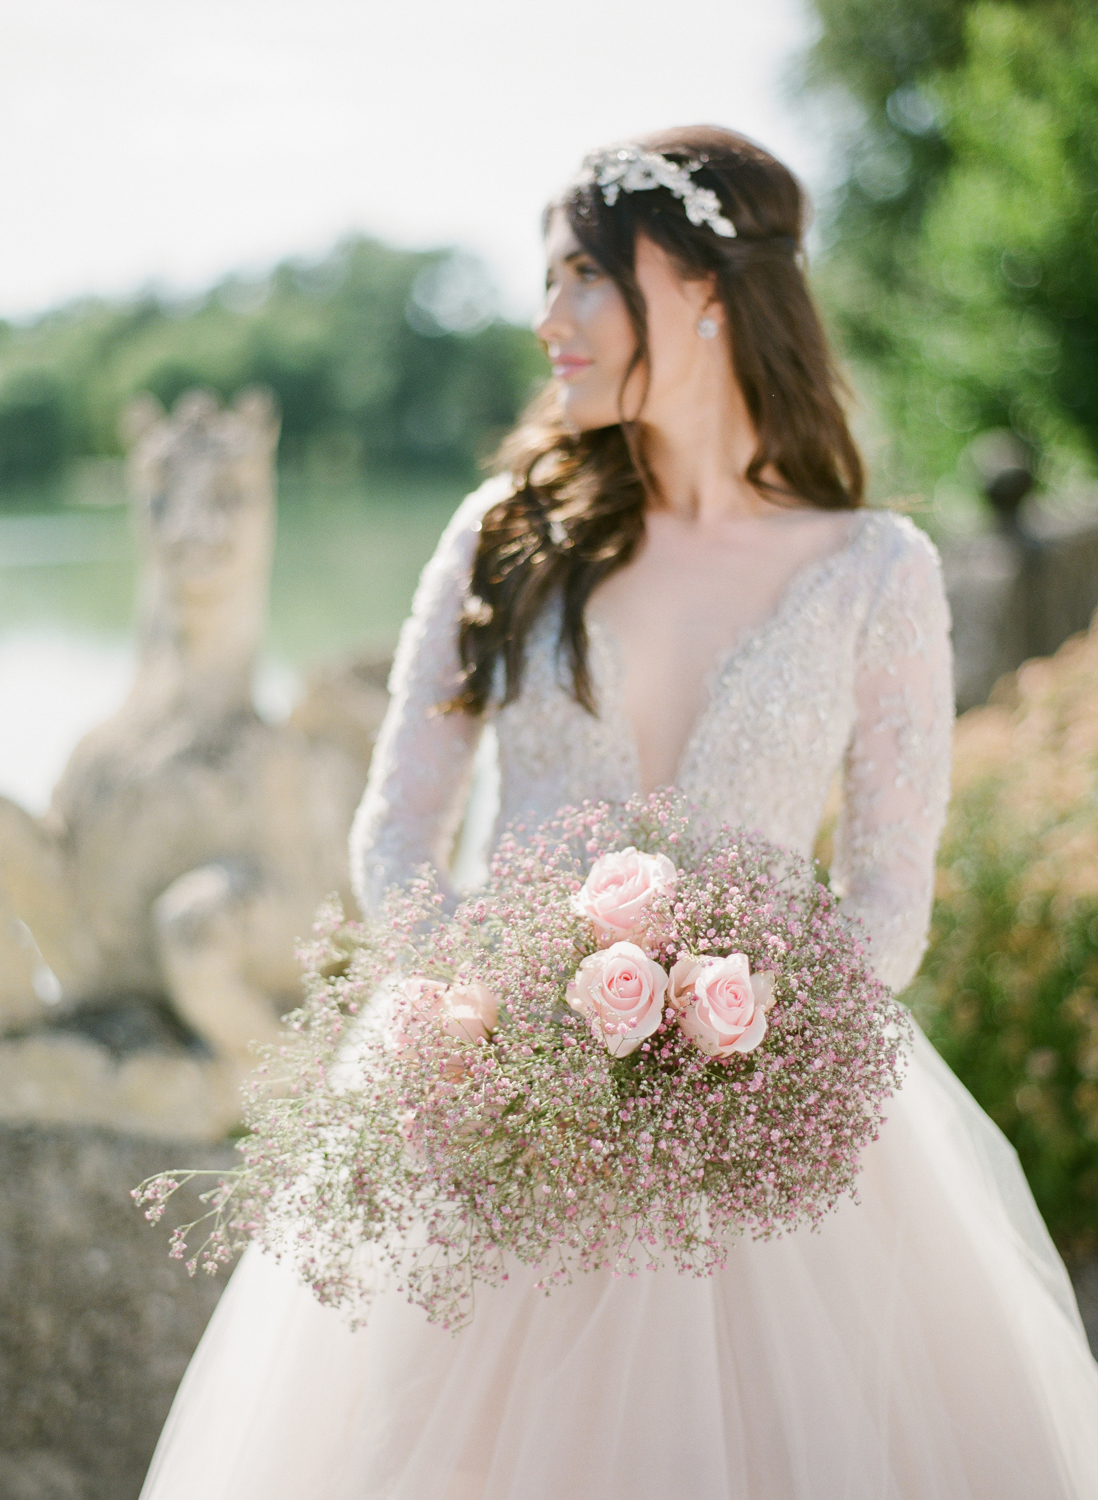 lake_como_wedding_photographer_nikol_bodnarova_148.JPG